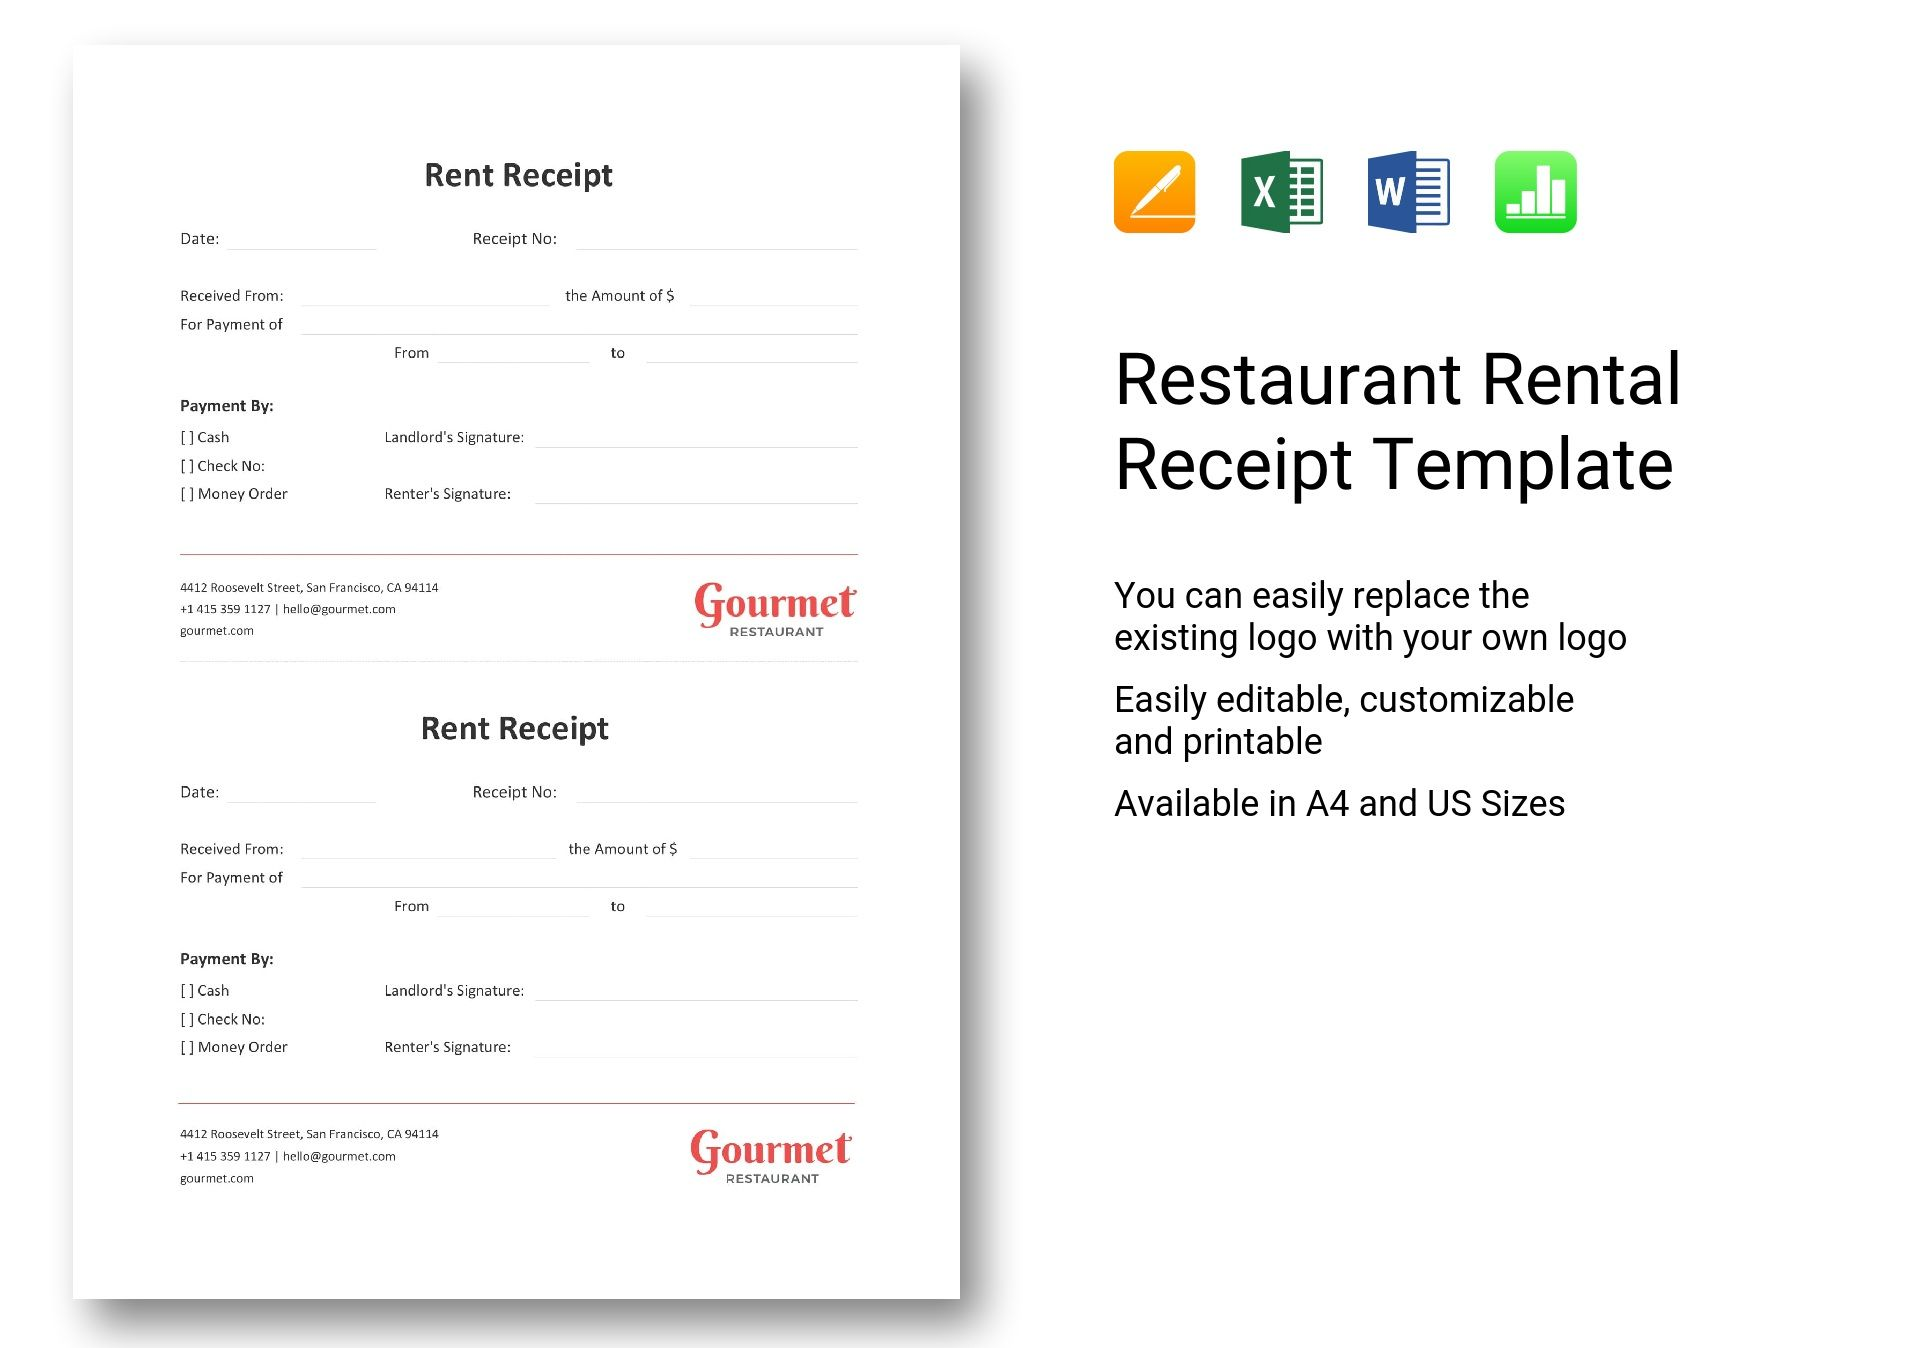 Restaurant Rental Receipt